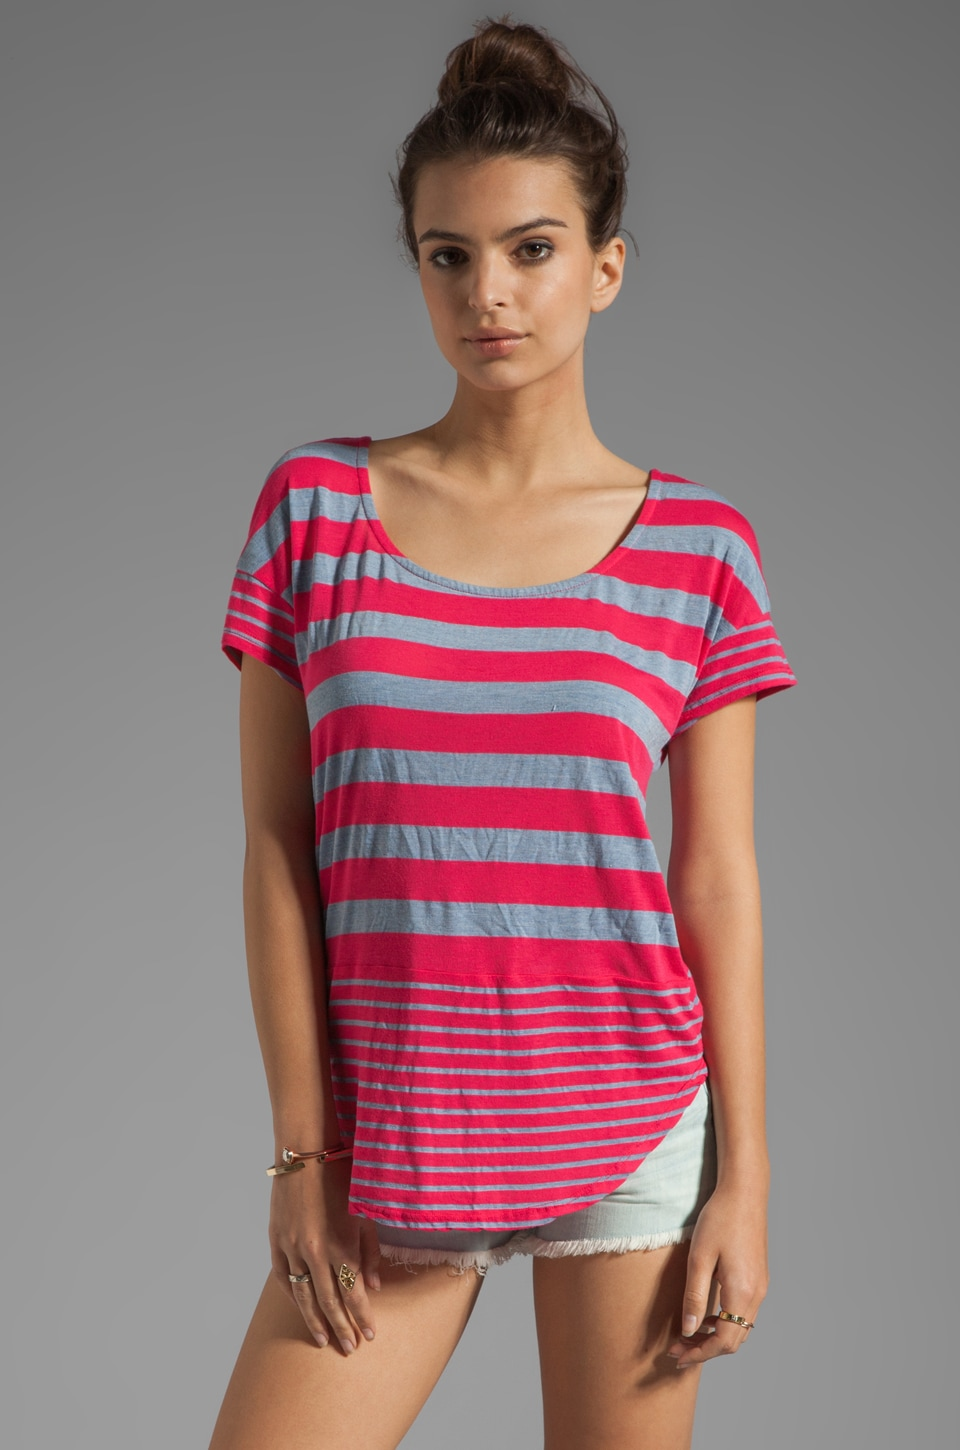 Splendid Marseille Chambray Stripe Tee in Flamingo